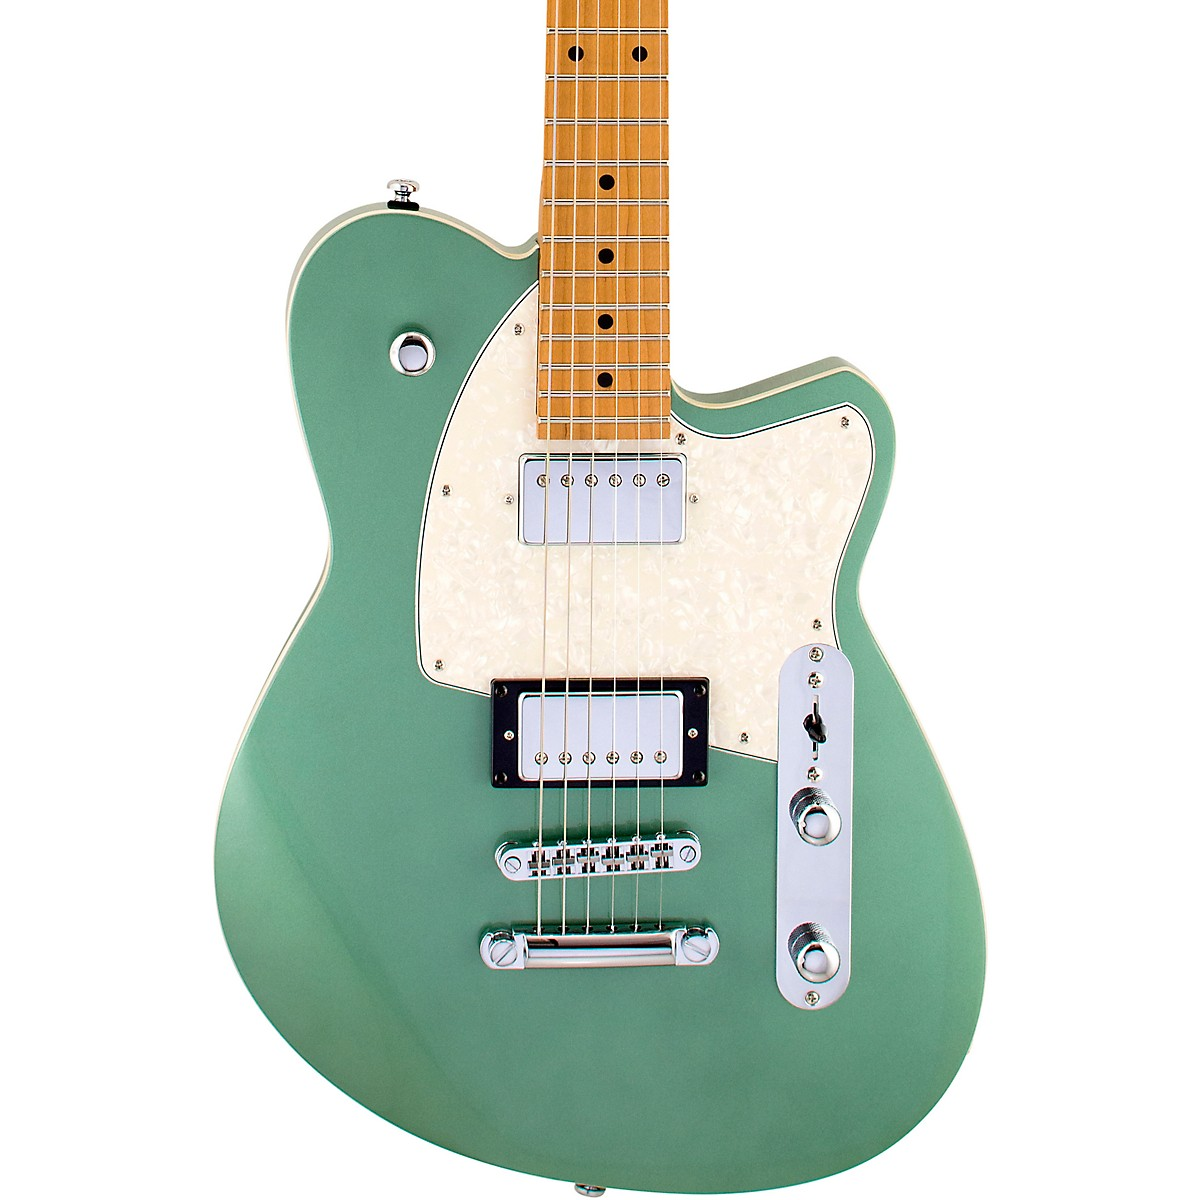 Reverend Charger HB Roasted Maple Fingerboard Electric Guitar